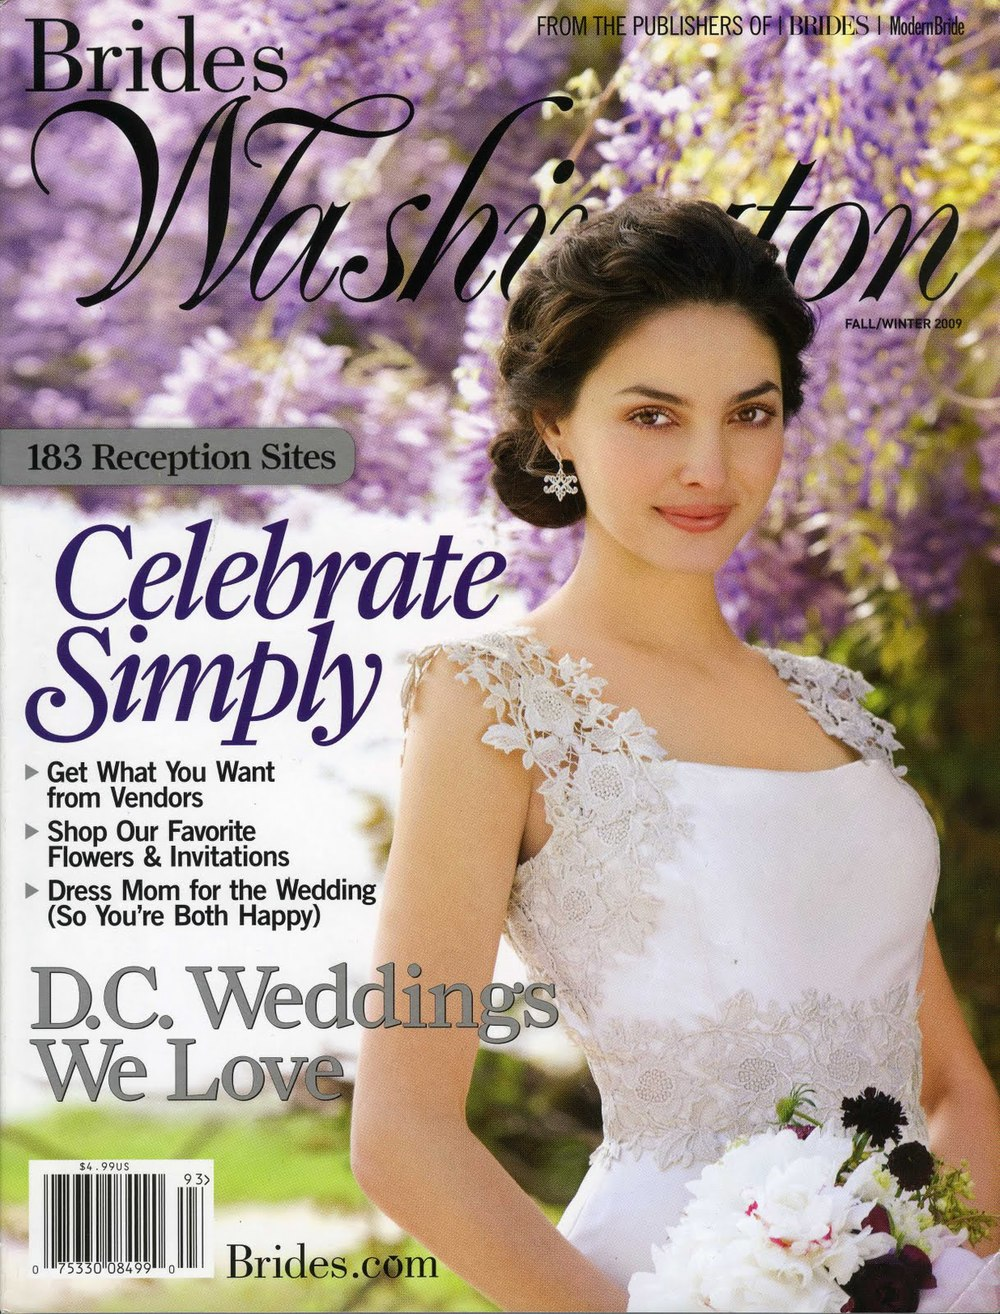 Brides Washington April 2011